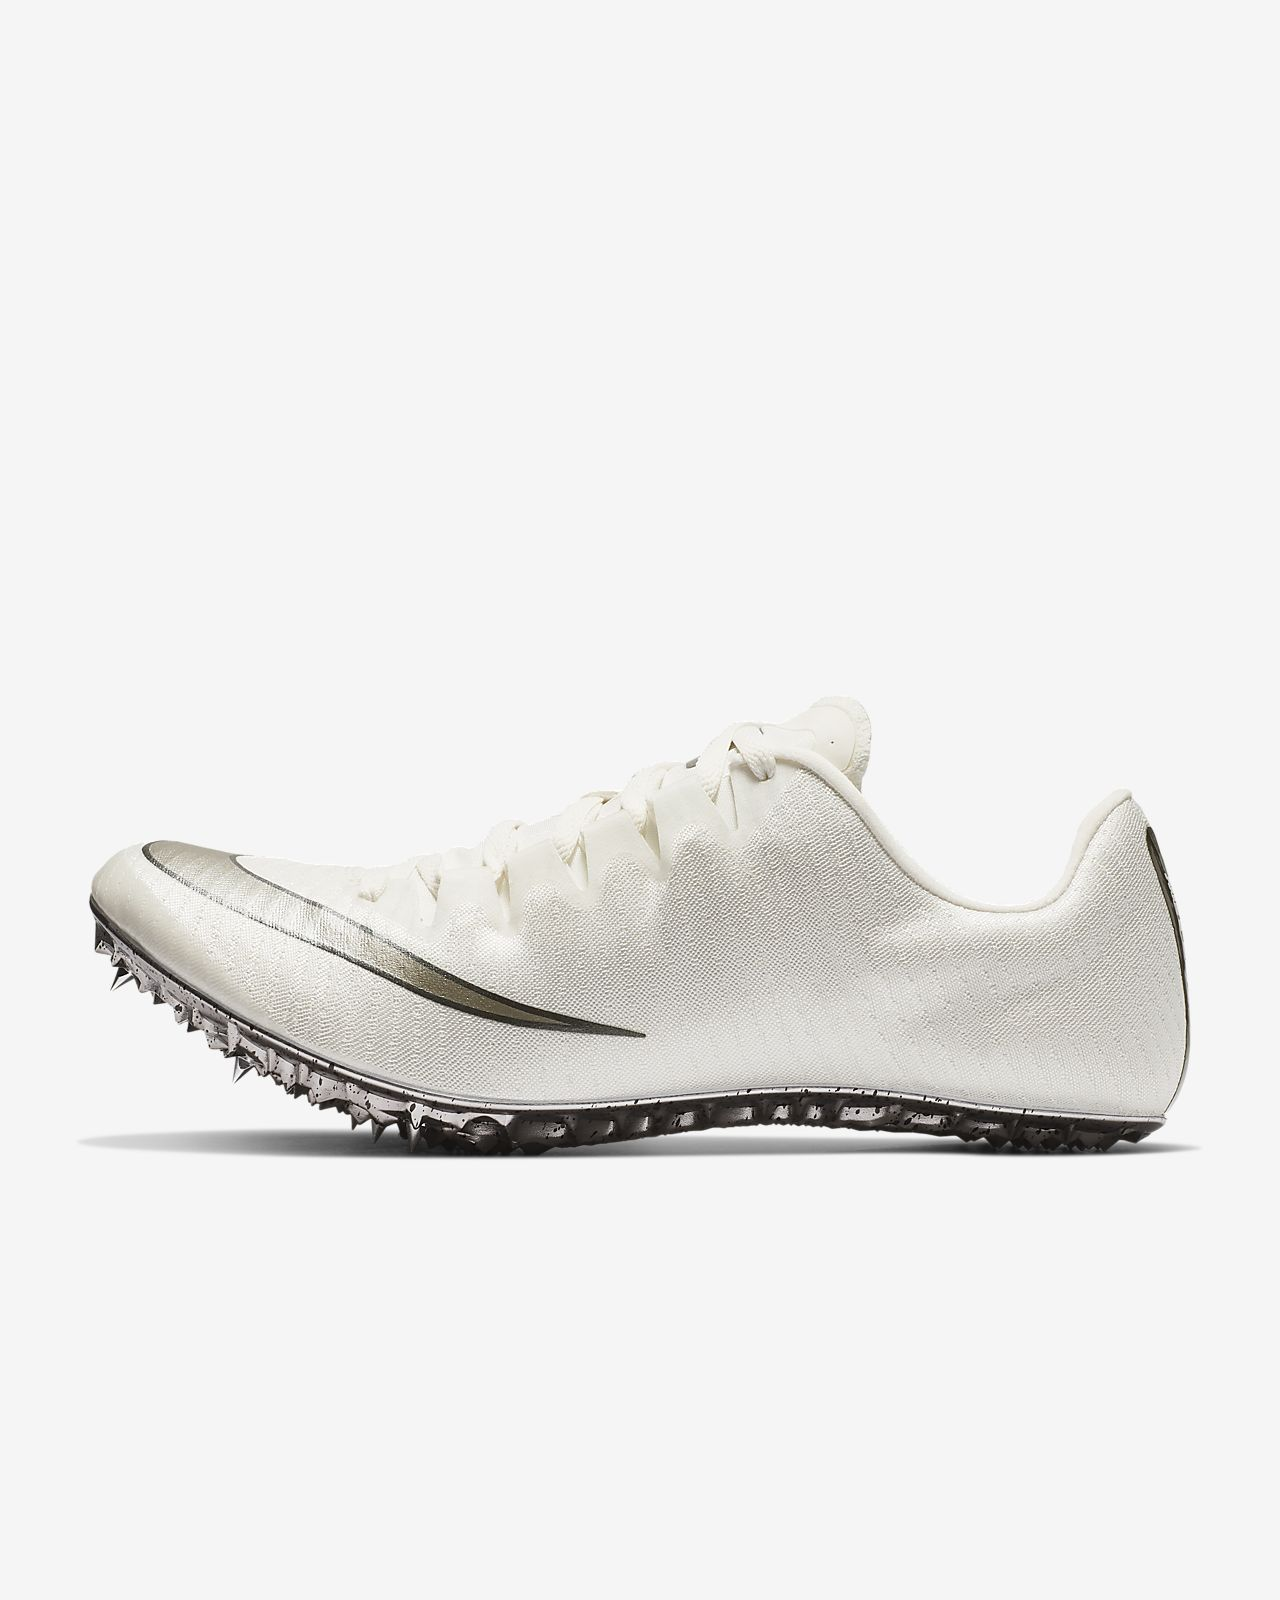 eb24db3fec8 Nike Superfly Elite Racing Spike